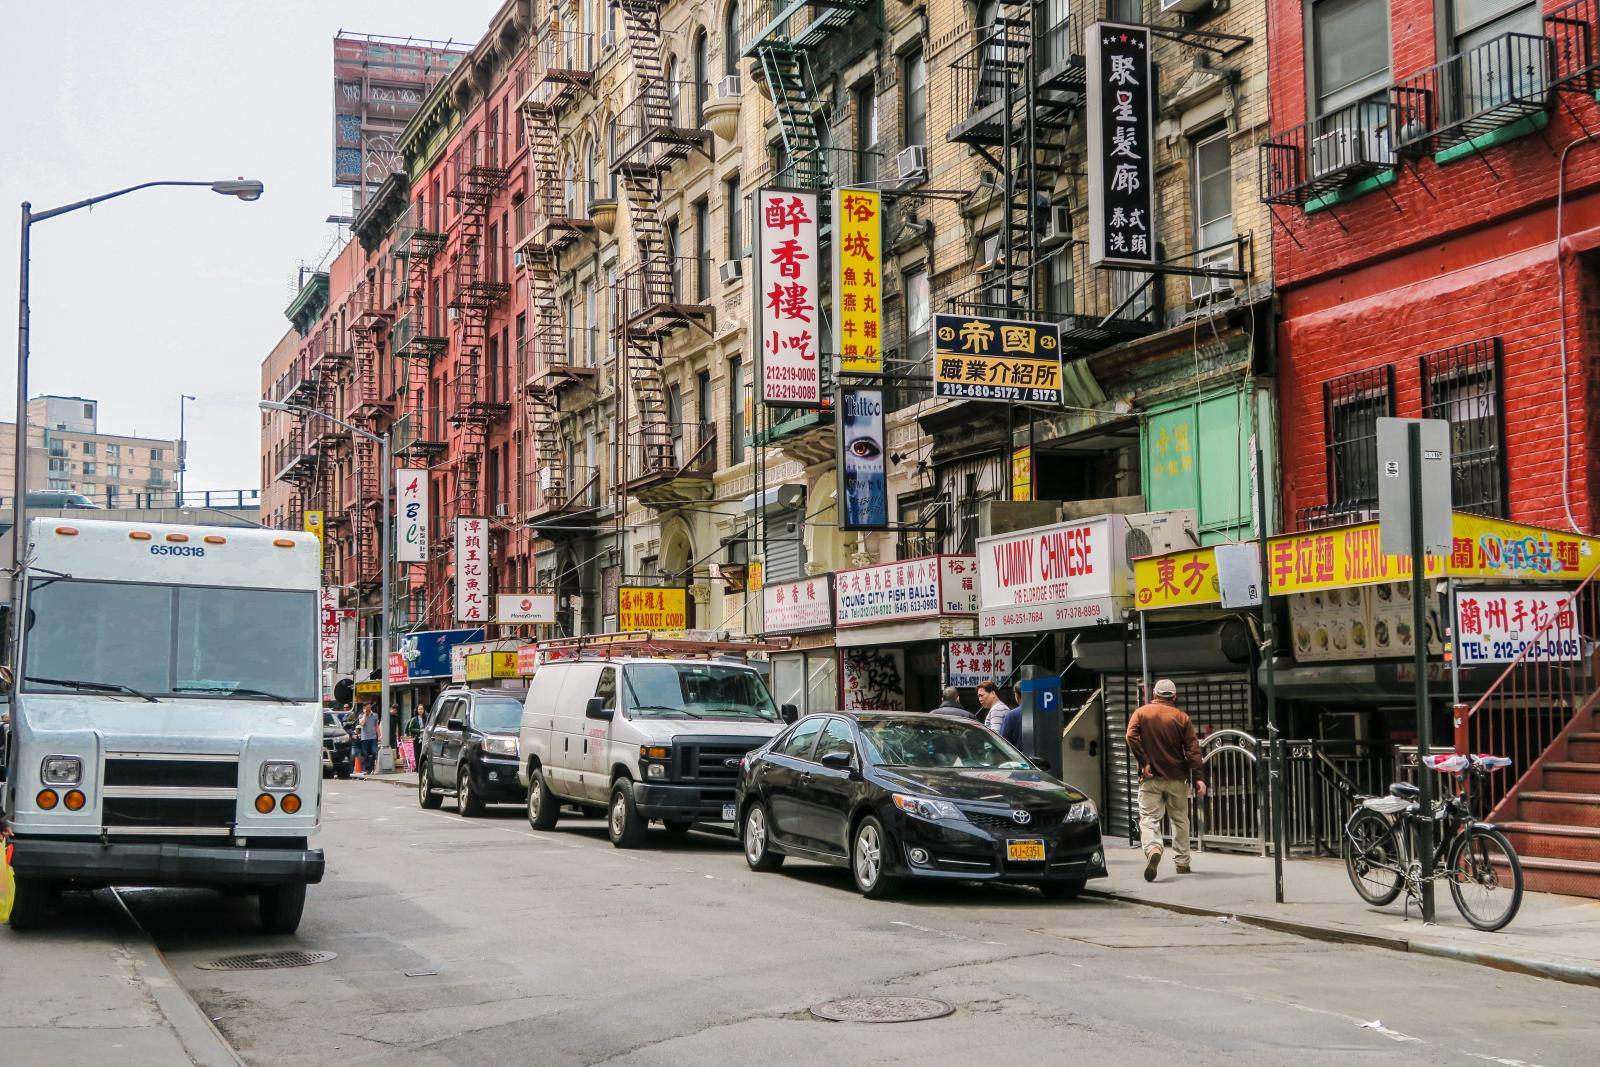 nueva-york-china-town-calle-161019174958004